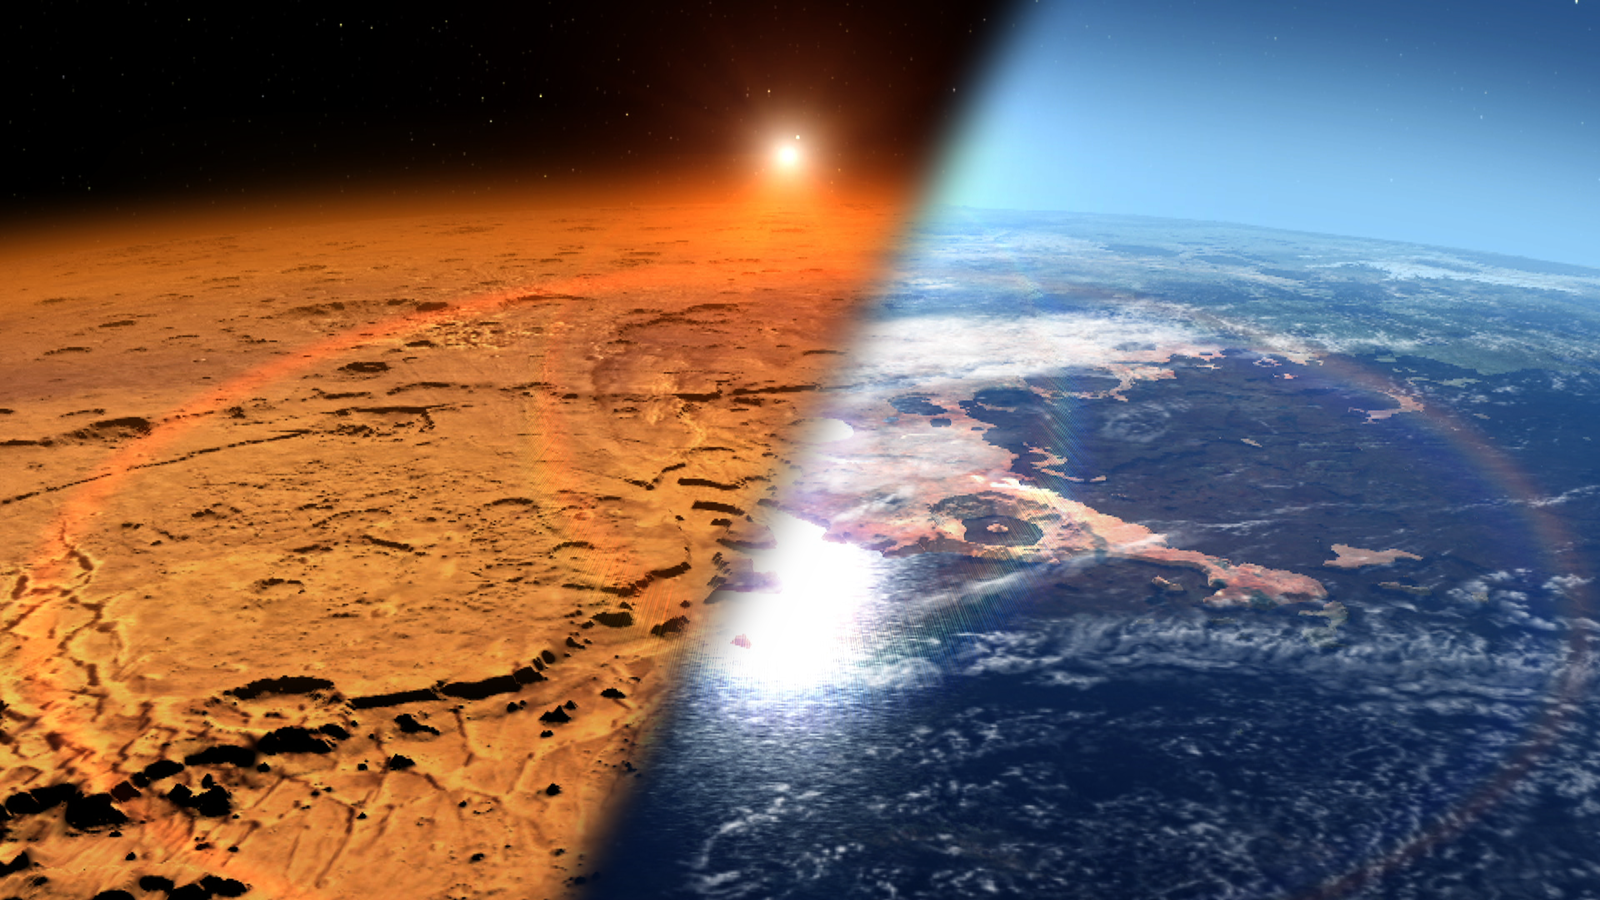 This artist's concept depicts the early Martian environment (right) - believed to contain liquid water and a thicker atmosphere - versus the cold, dry environment seen at Mars today (left).